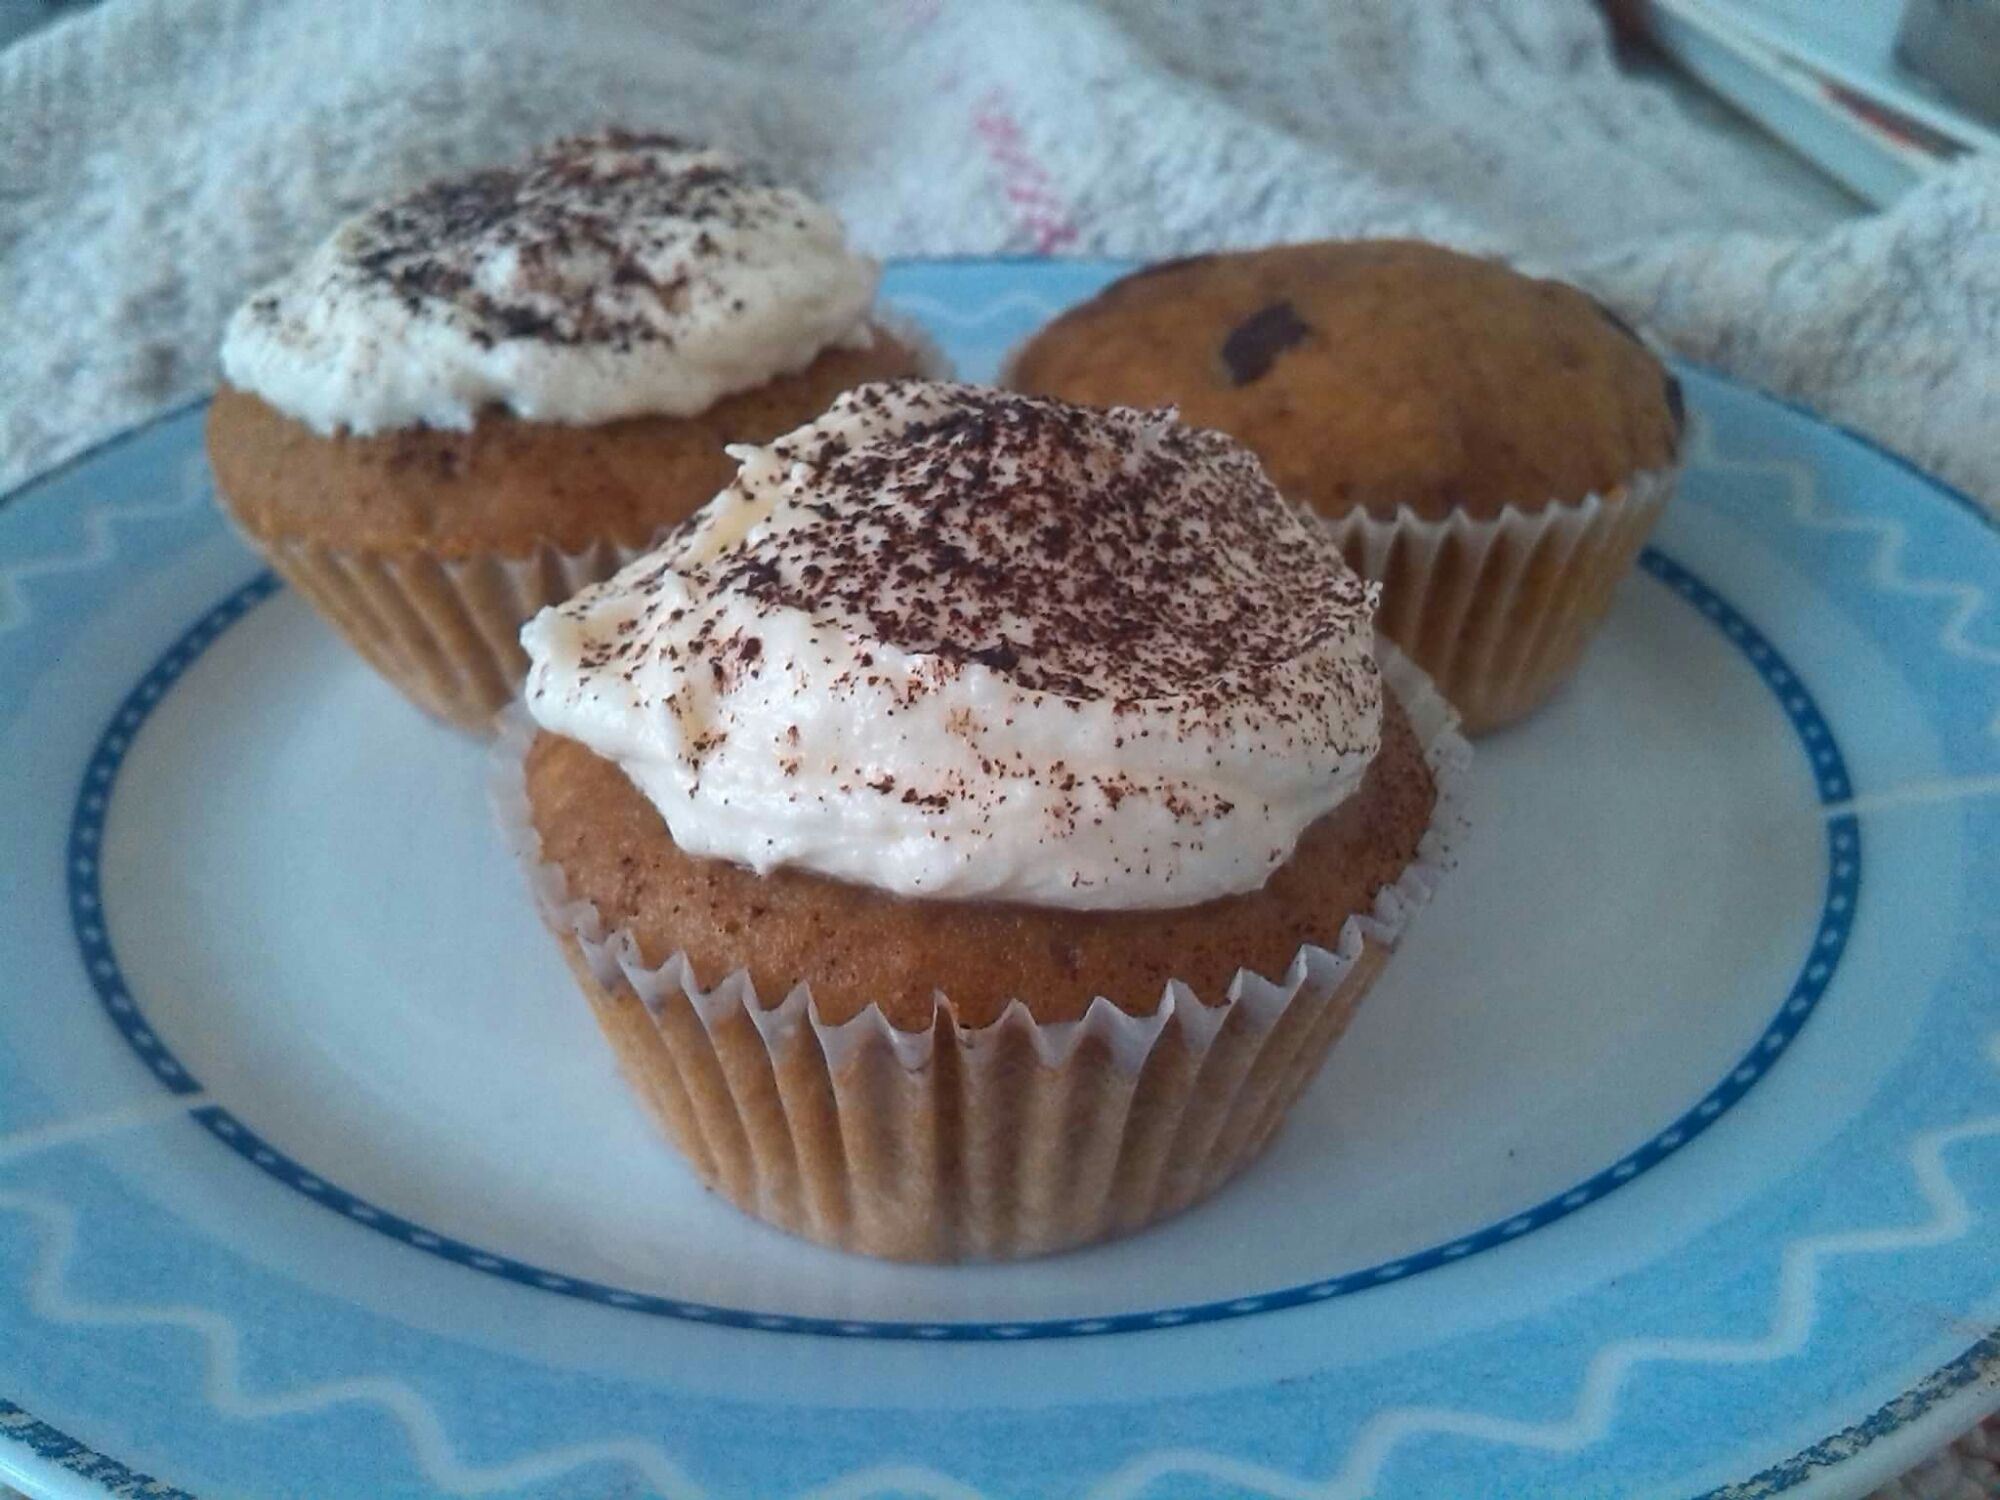 Cappuccino Cupcakes the dutch baker This Cupcakes  the dutch baker is a best for your Lunch made with wholesome ingredients! Dairy, Gluten Free, grain free and paleo too!, Our cupcakes Recipes very delicious, we can try to make this Cakes recipes at home.Read More About This Recipe  Click here